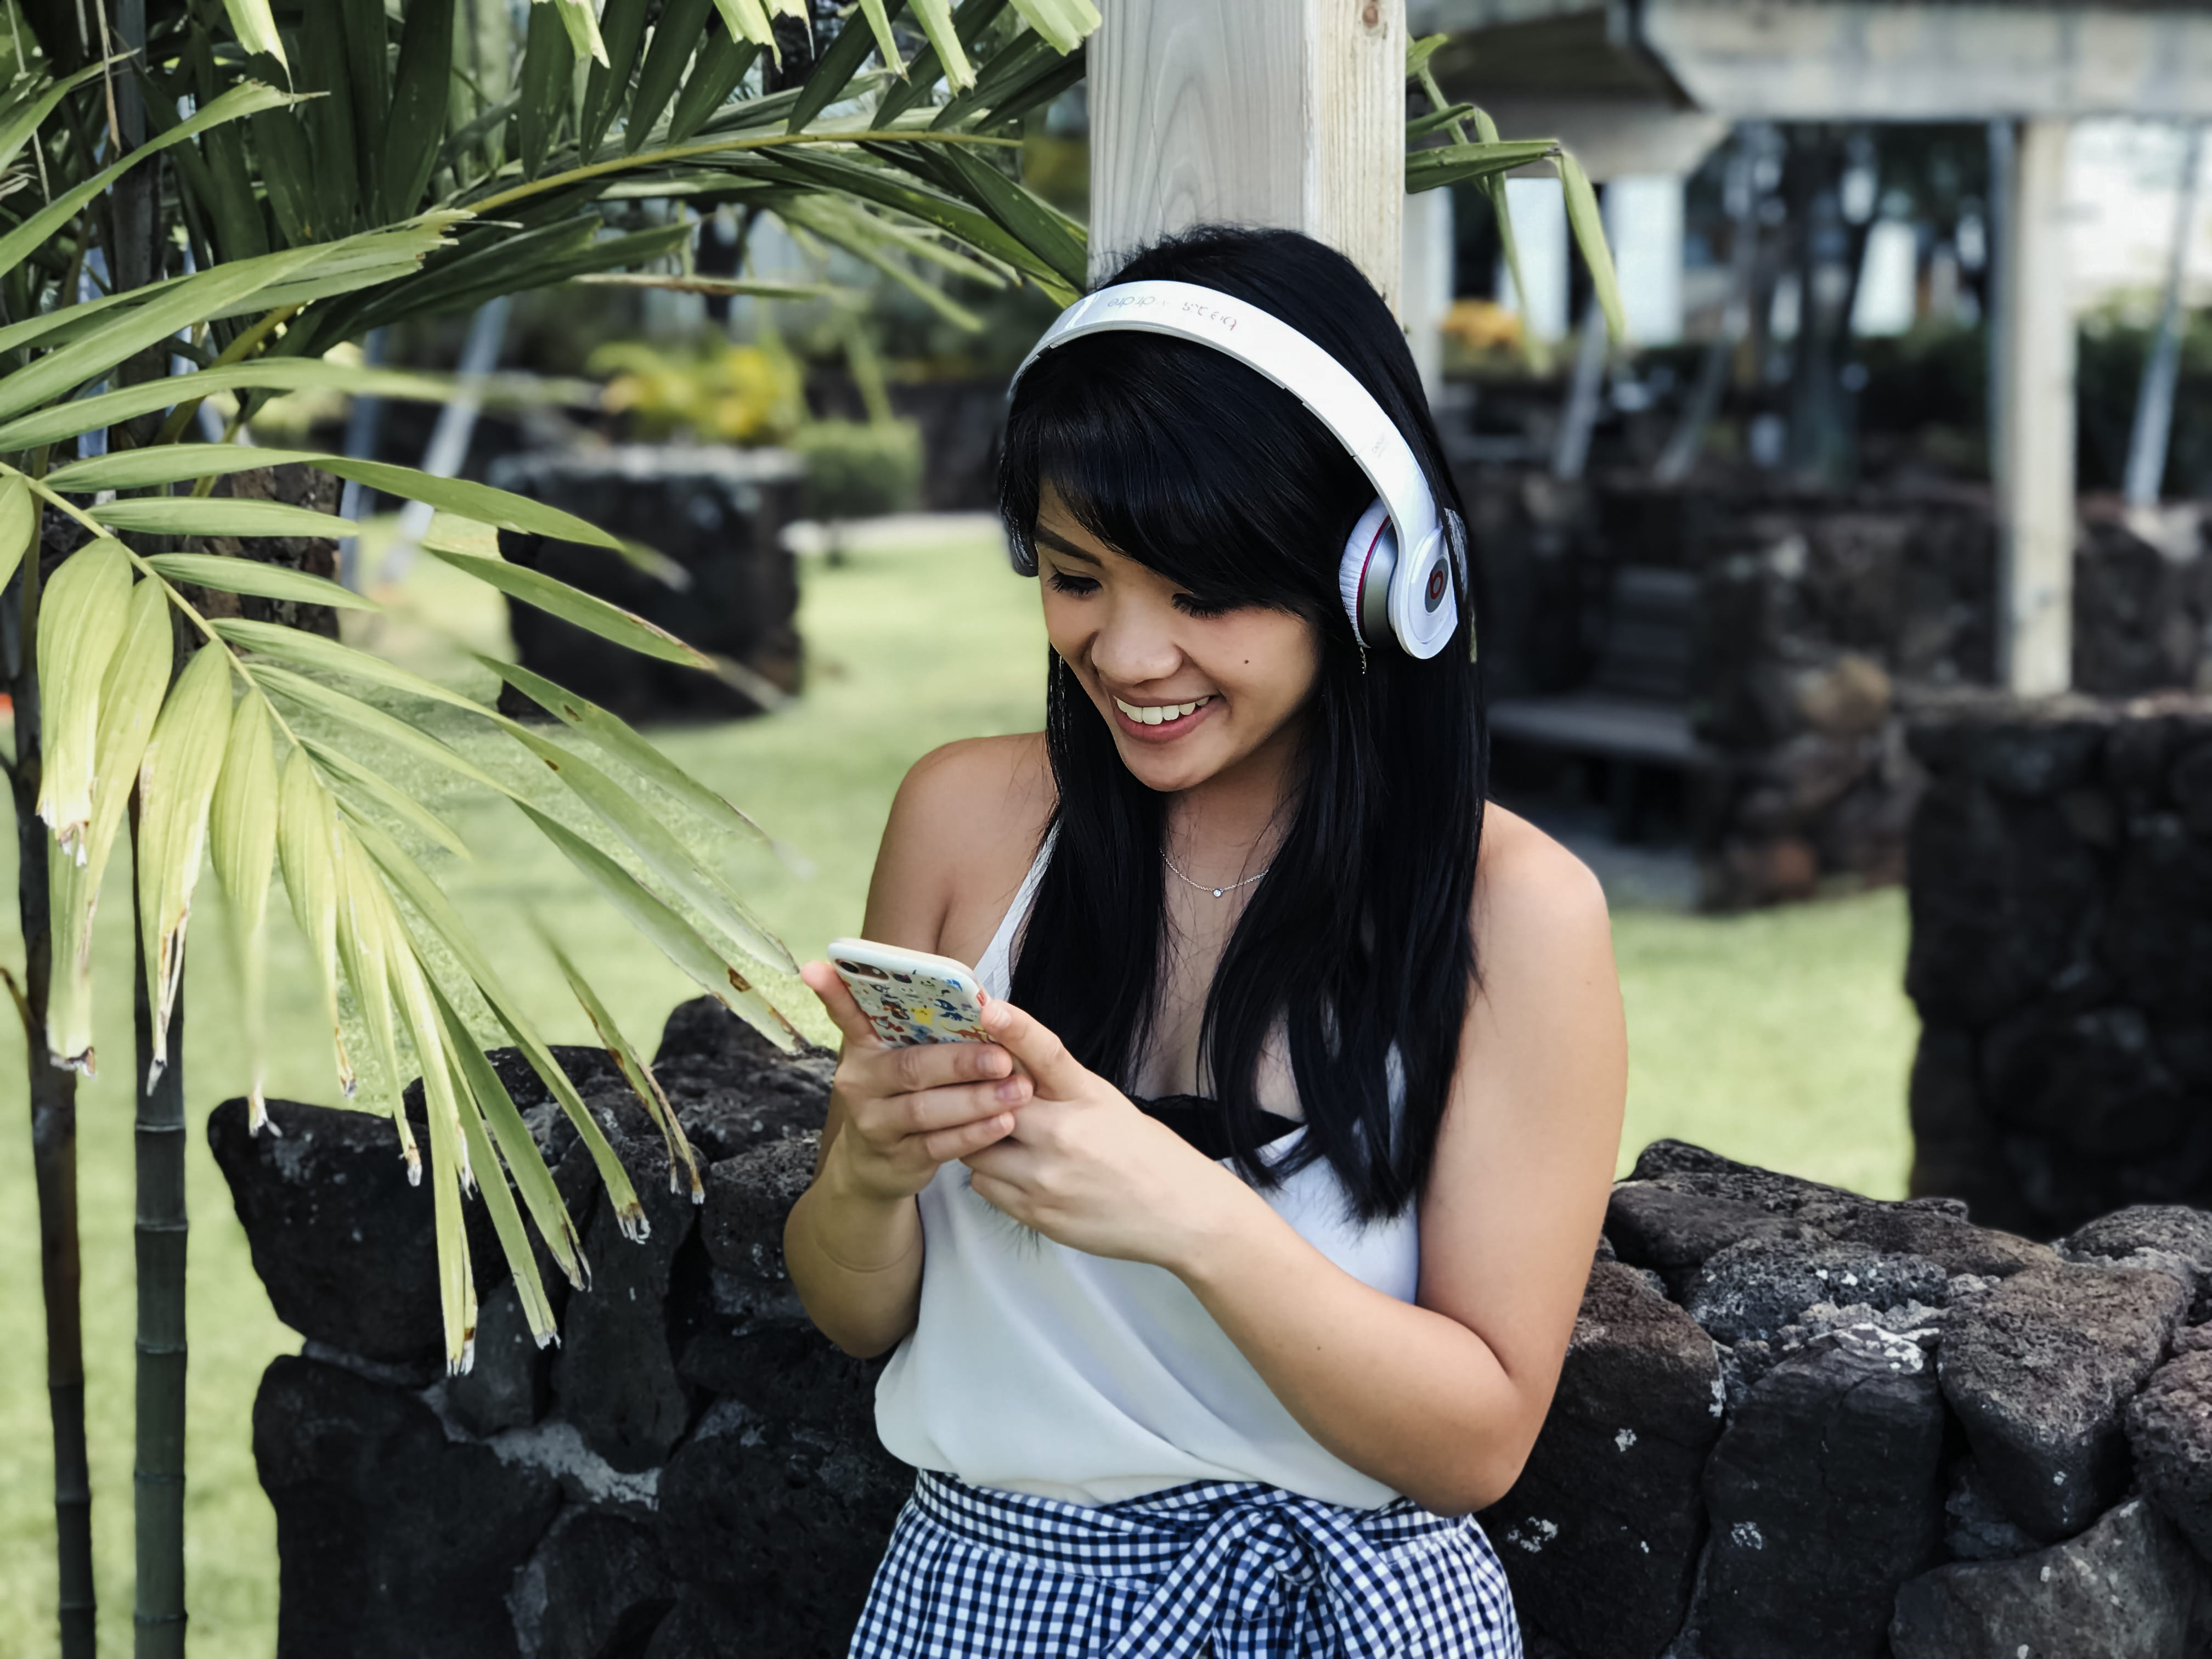 A girl looking at her device listening to a podcast